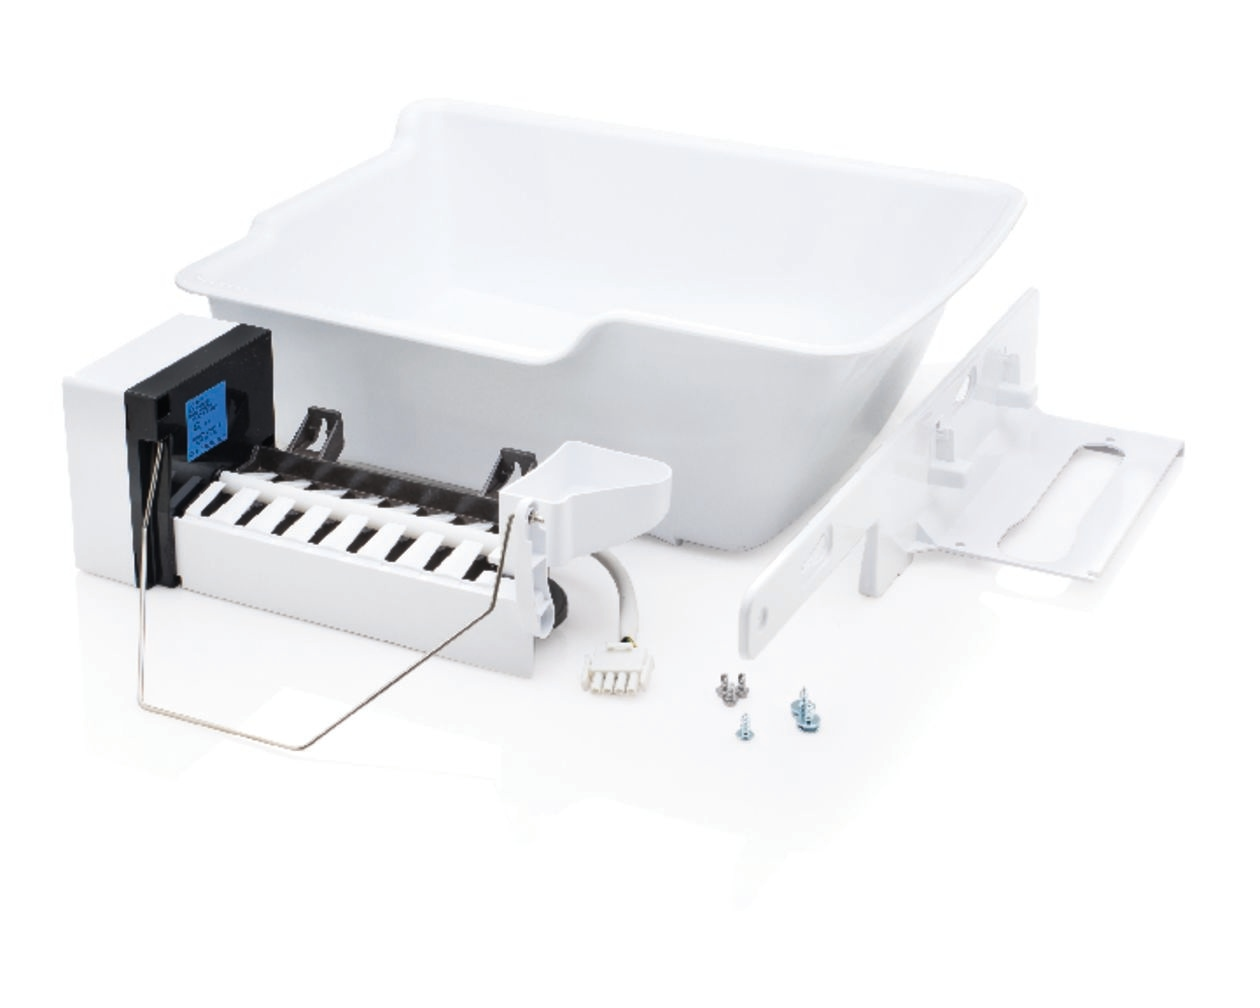 French Door Bottom Mount Ice Maker Kit, Standard-Depth